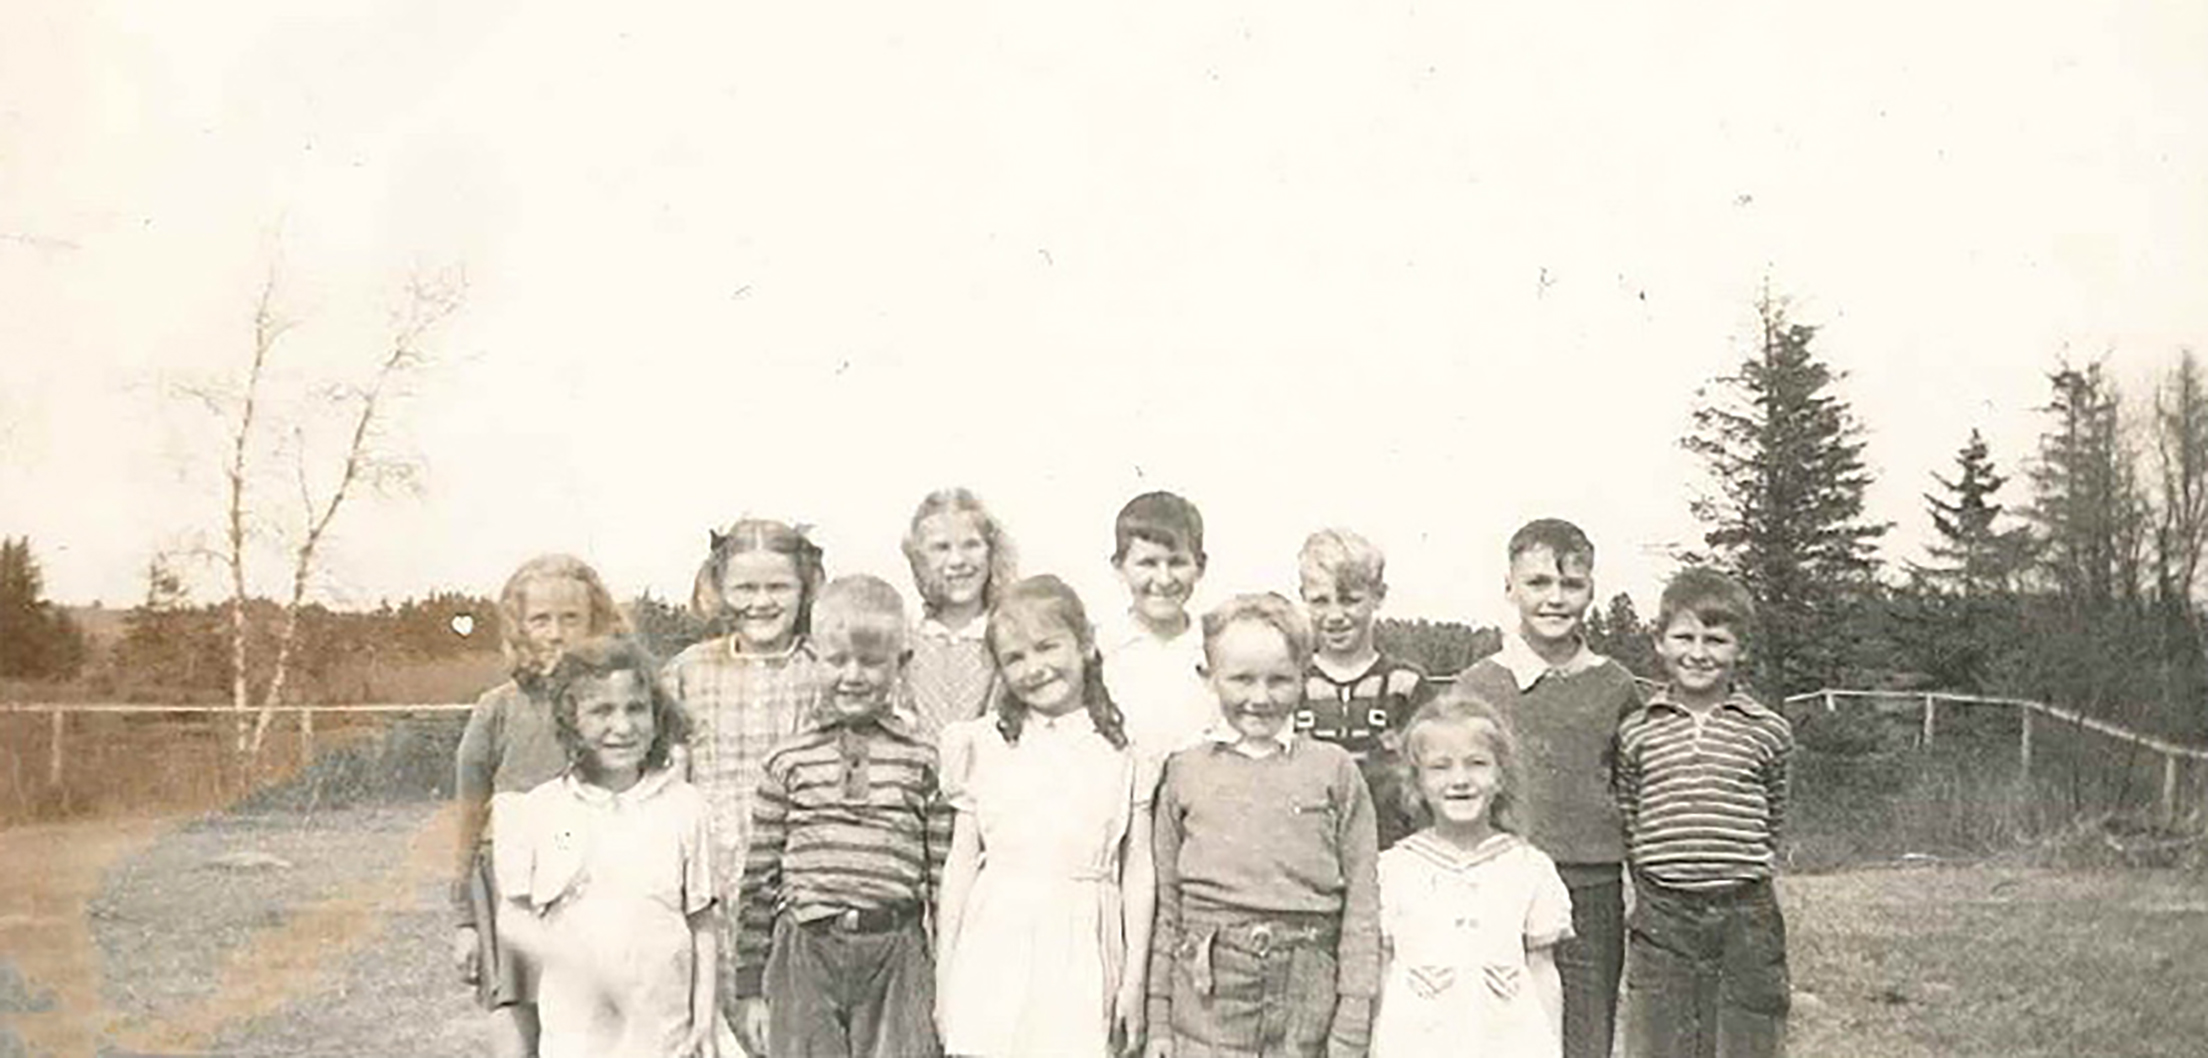 Betty (front row, right) with the lower school in 1941